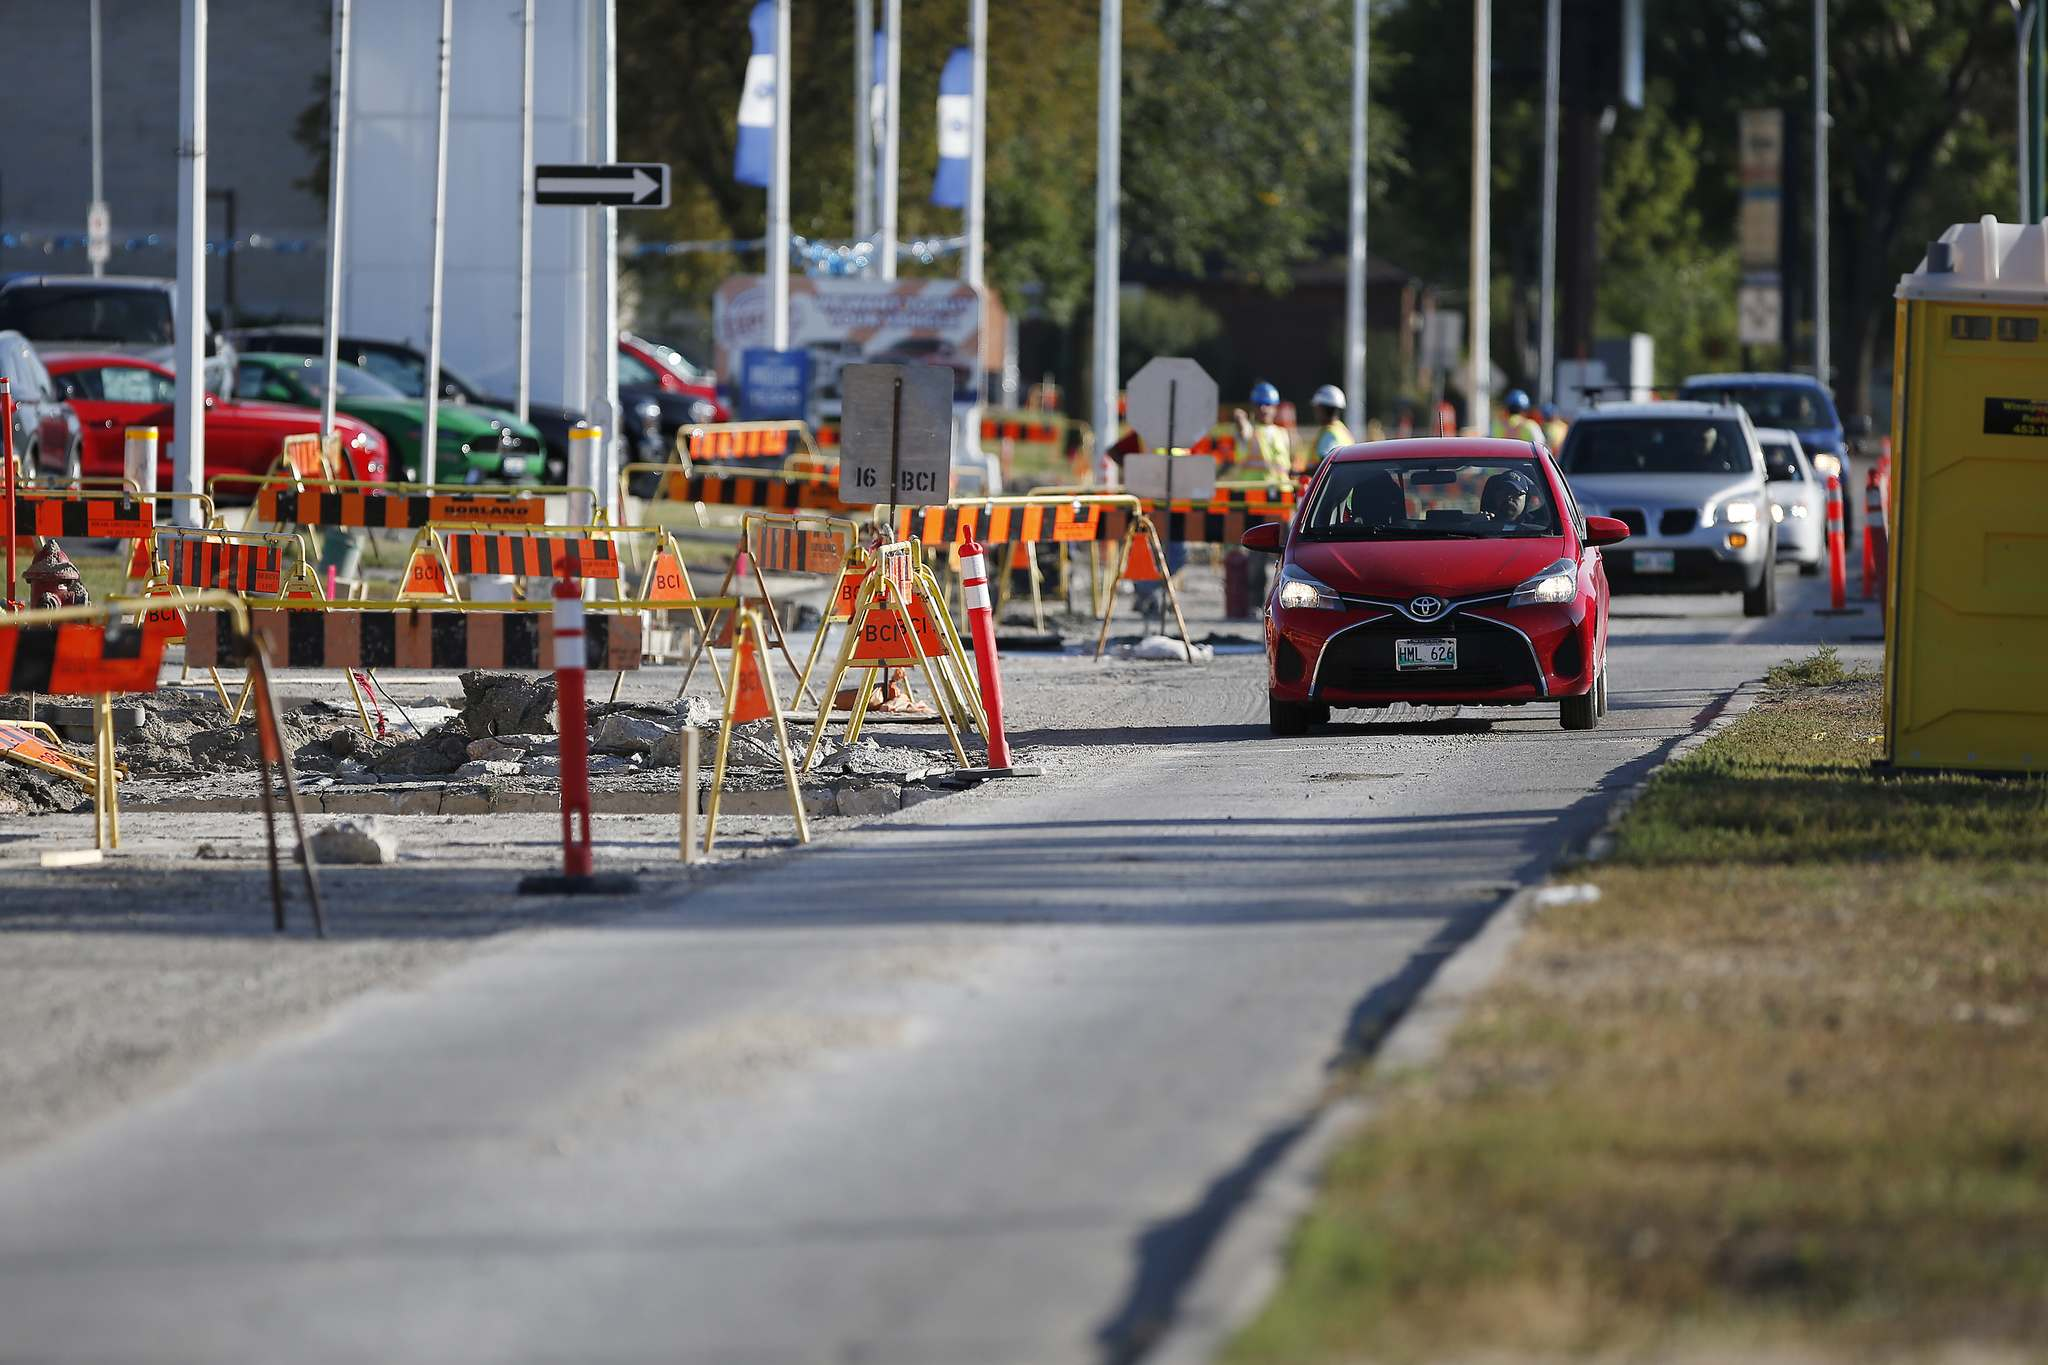 As a result of the provincial funding shortfall, the city had to cancel plans to repair 53 residential streets and 11 back lanes this year. The Empress Street project (above) is still proceeding and is expected to be finished next year. (John Woods / Winnipeg Free Press files)</p></p>